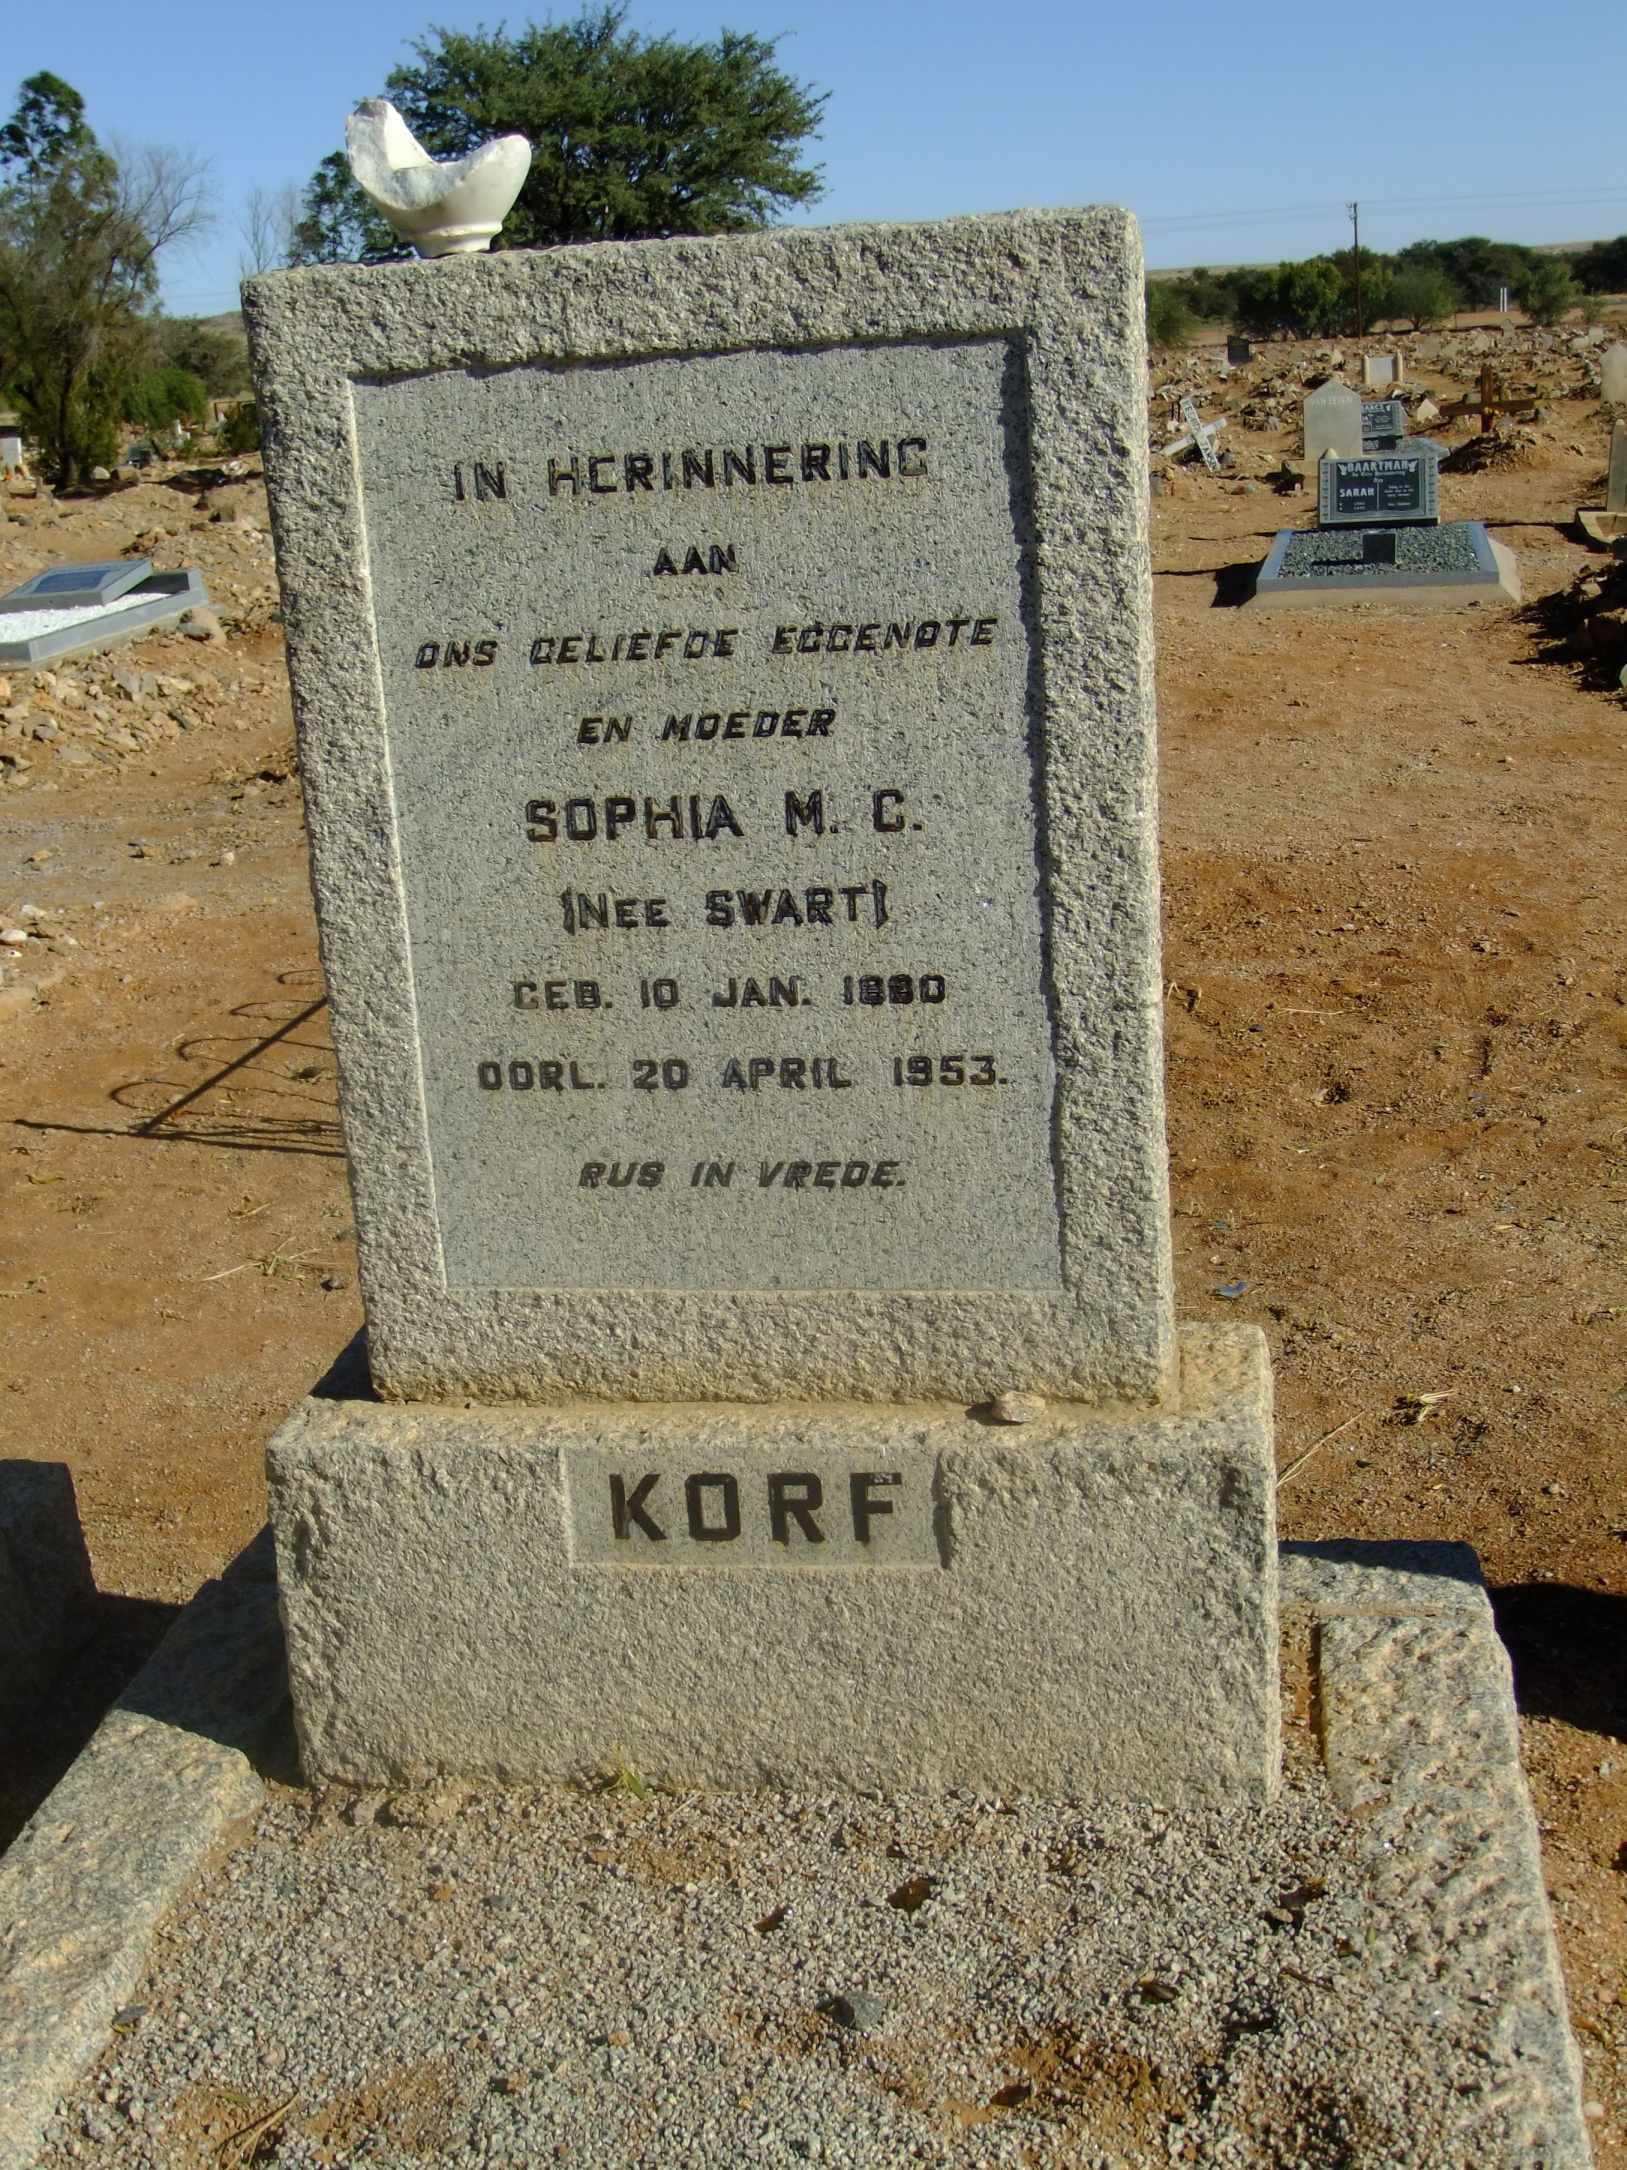 Korff, Sophia MC nee Swart born 10 January 1890 died 20 April 1953